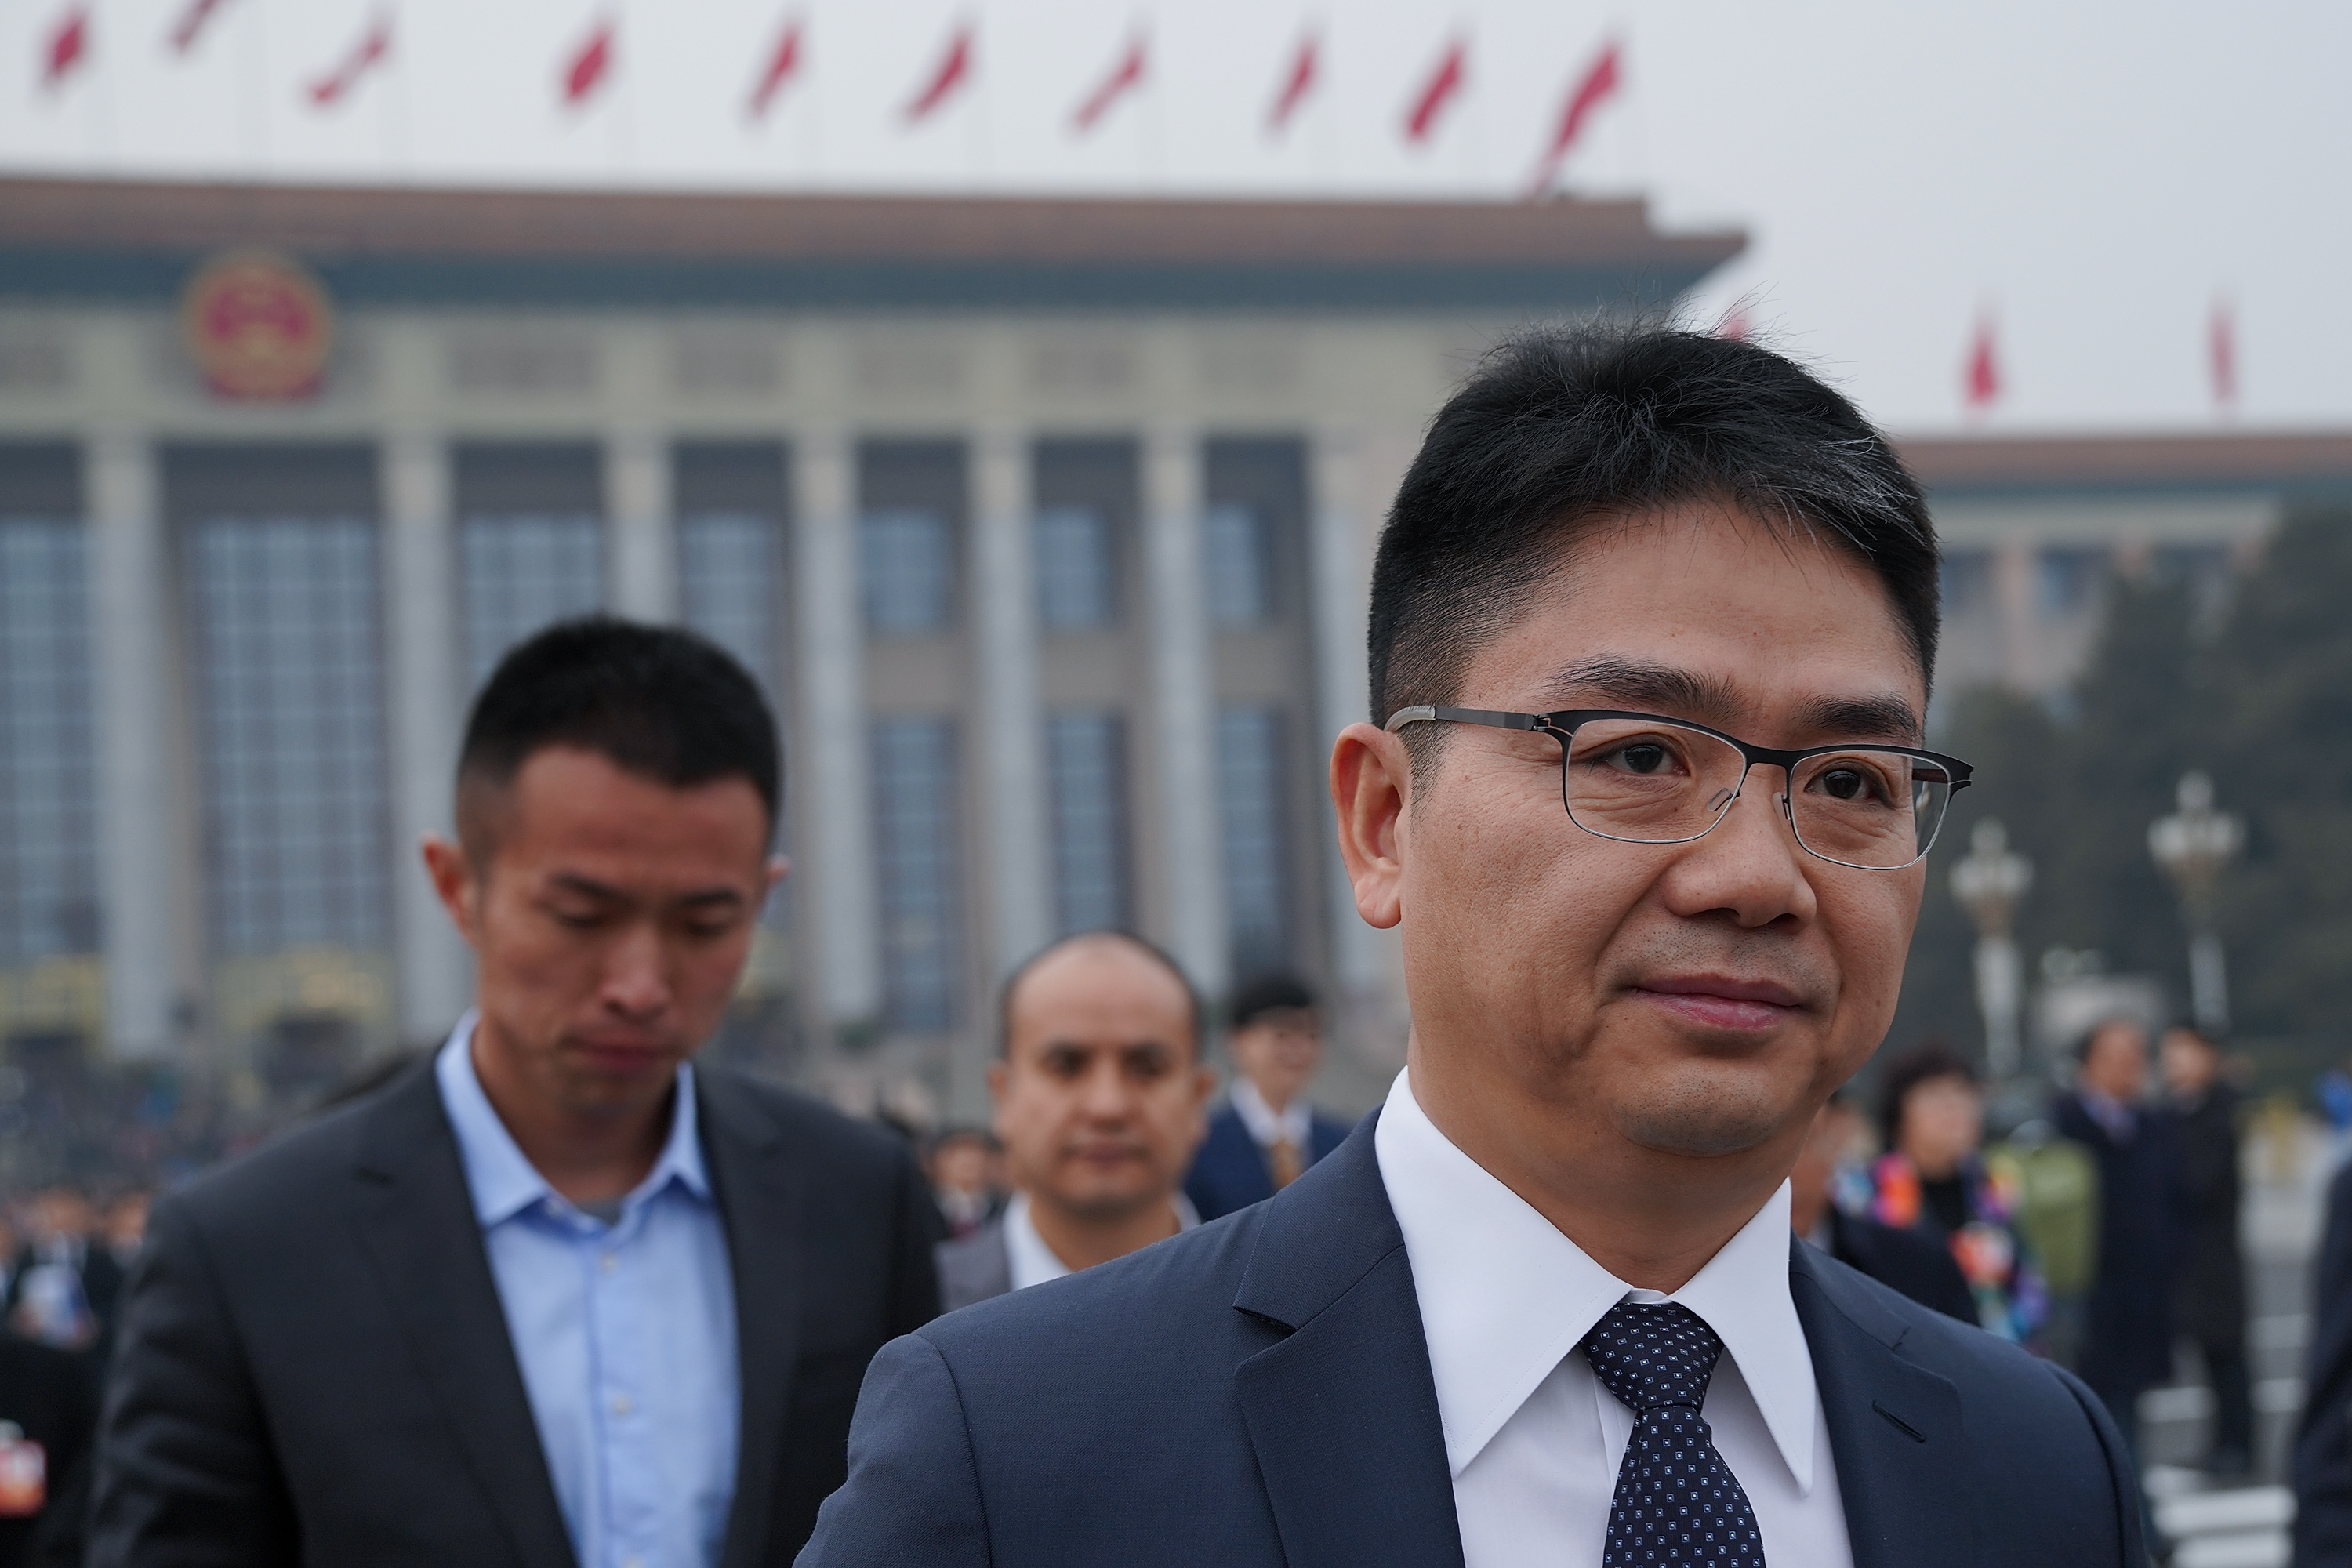 CEO of JD.com Richard Liu attends the opening ceremony of the Chinese People's Political Consultative Conference (CPPCC) on March 3, 2018 in Beijing, China.